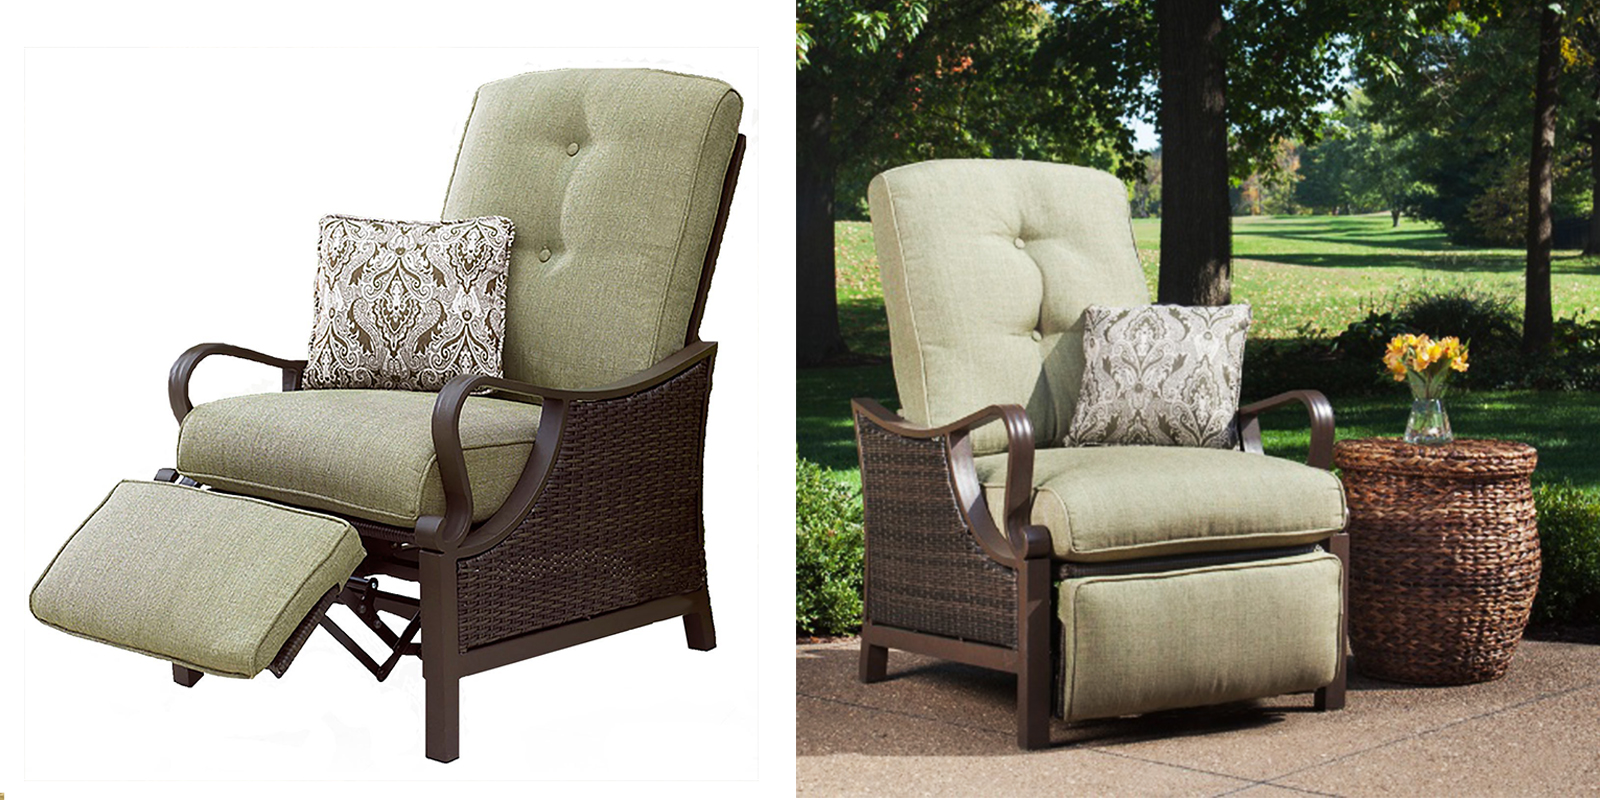 Patio Chair - Outdoor Recliner with Accent Pillow